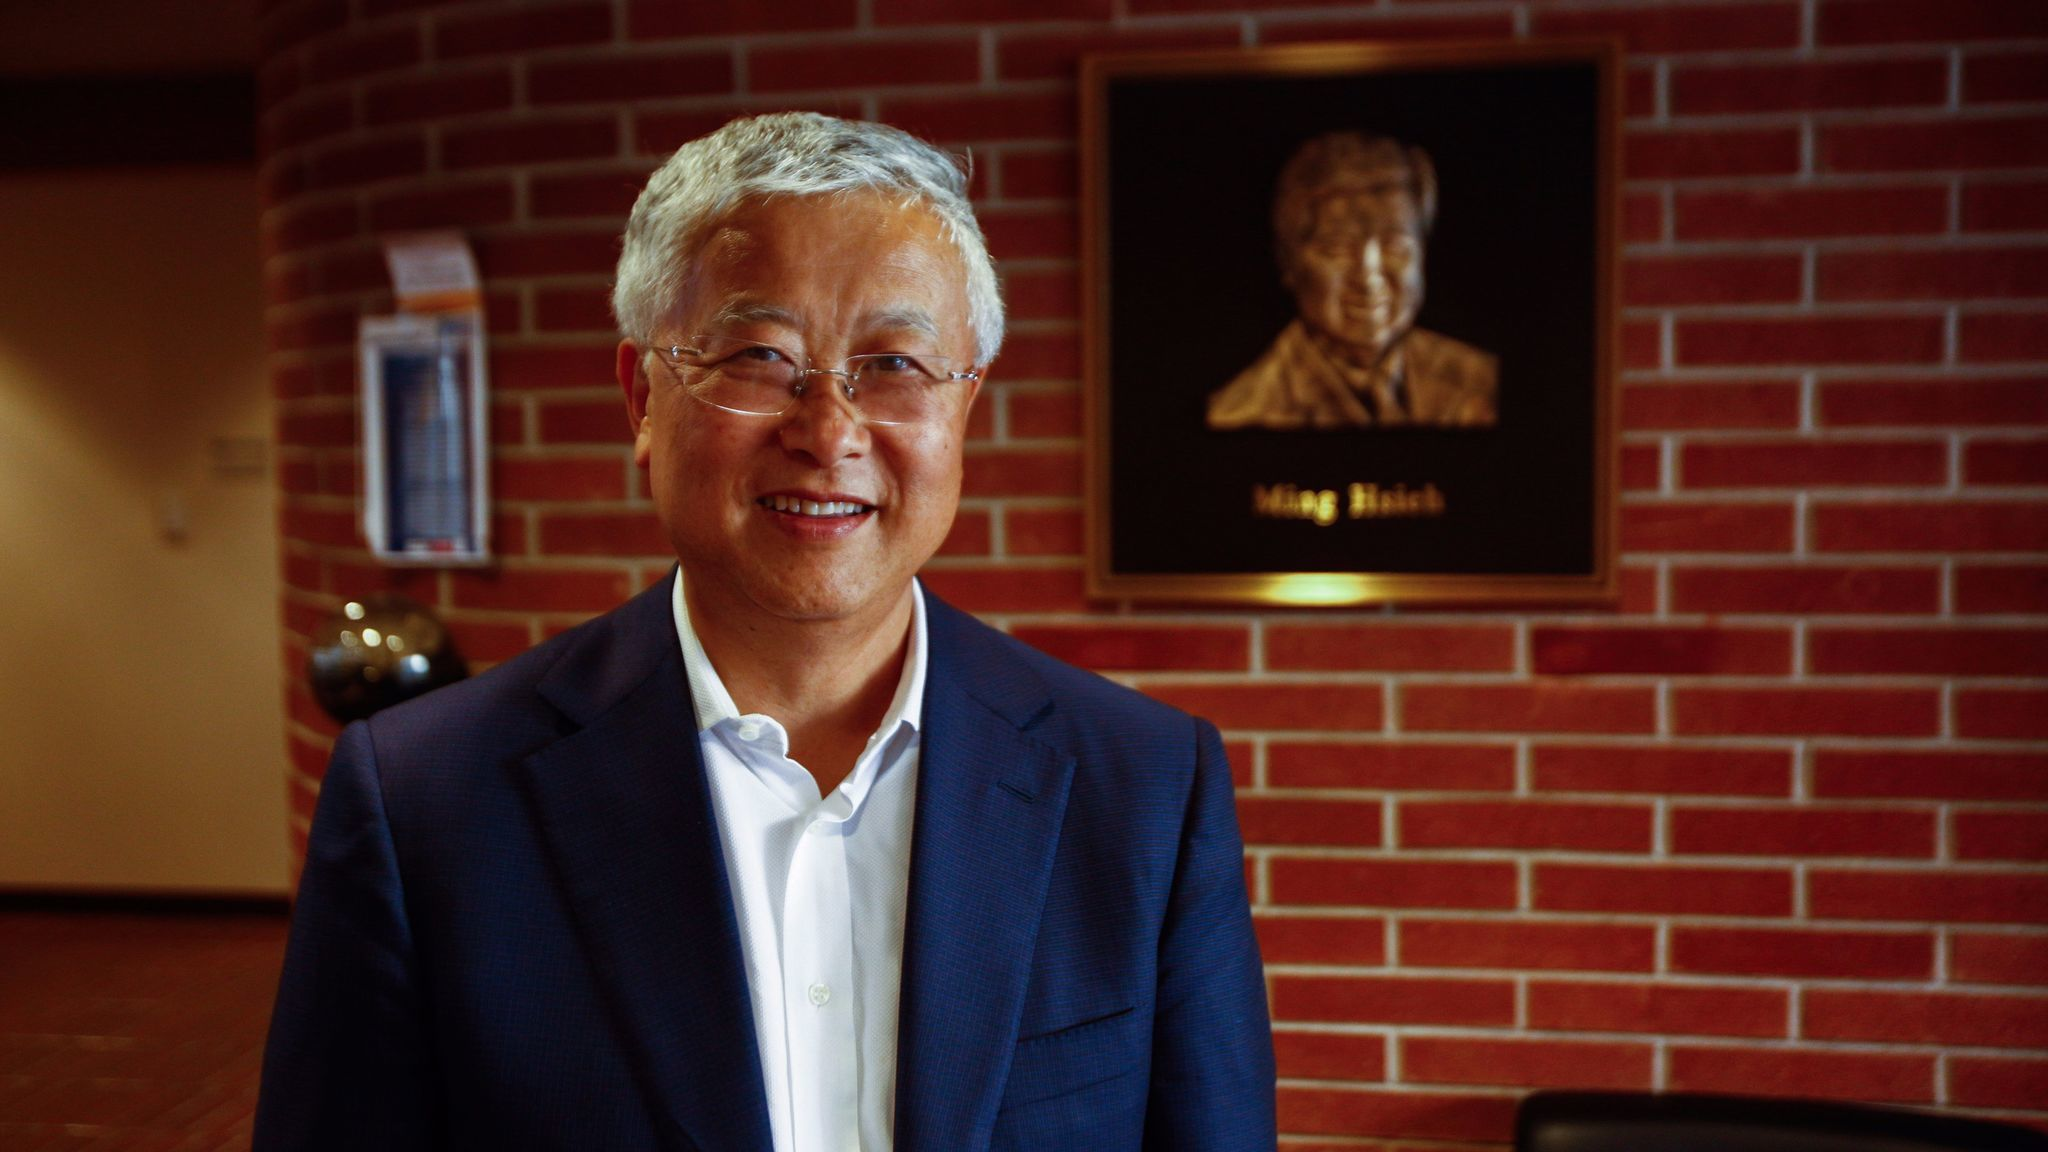 Ming Hsieh, who donated $35 million to his alma mater, USC, for its electrical engineering program and $50 million to fund research in nanomedicine for cancer treatments, stands in the university's Ming Hsieh Department of Electrical Engineering.